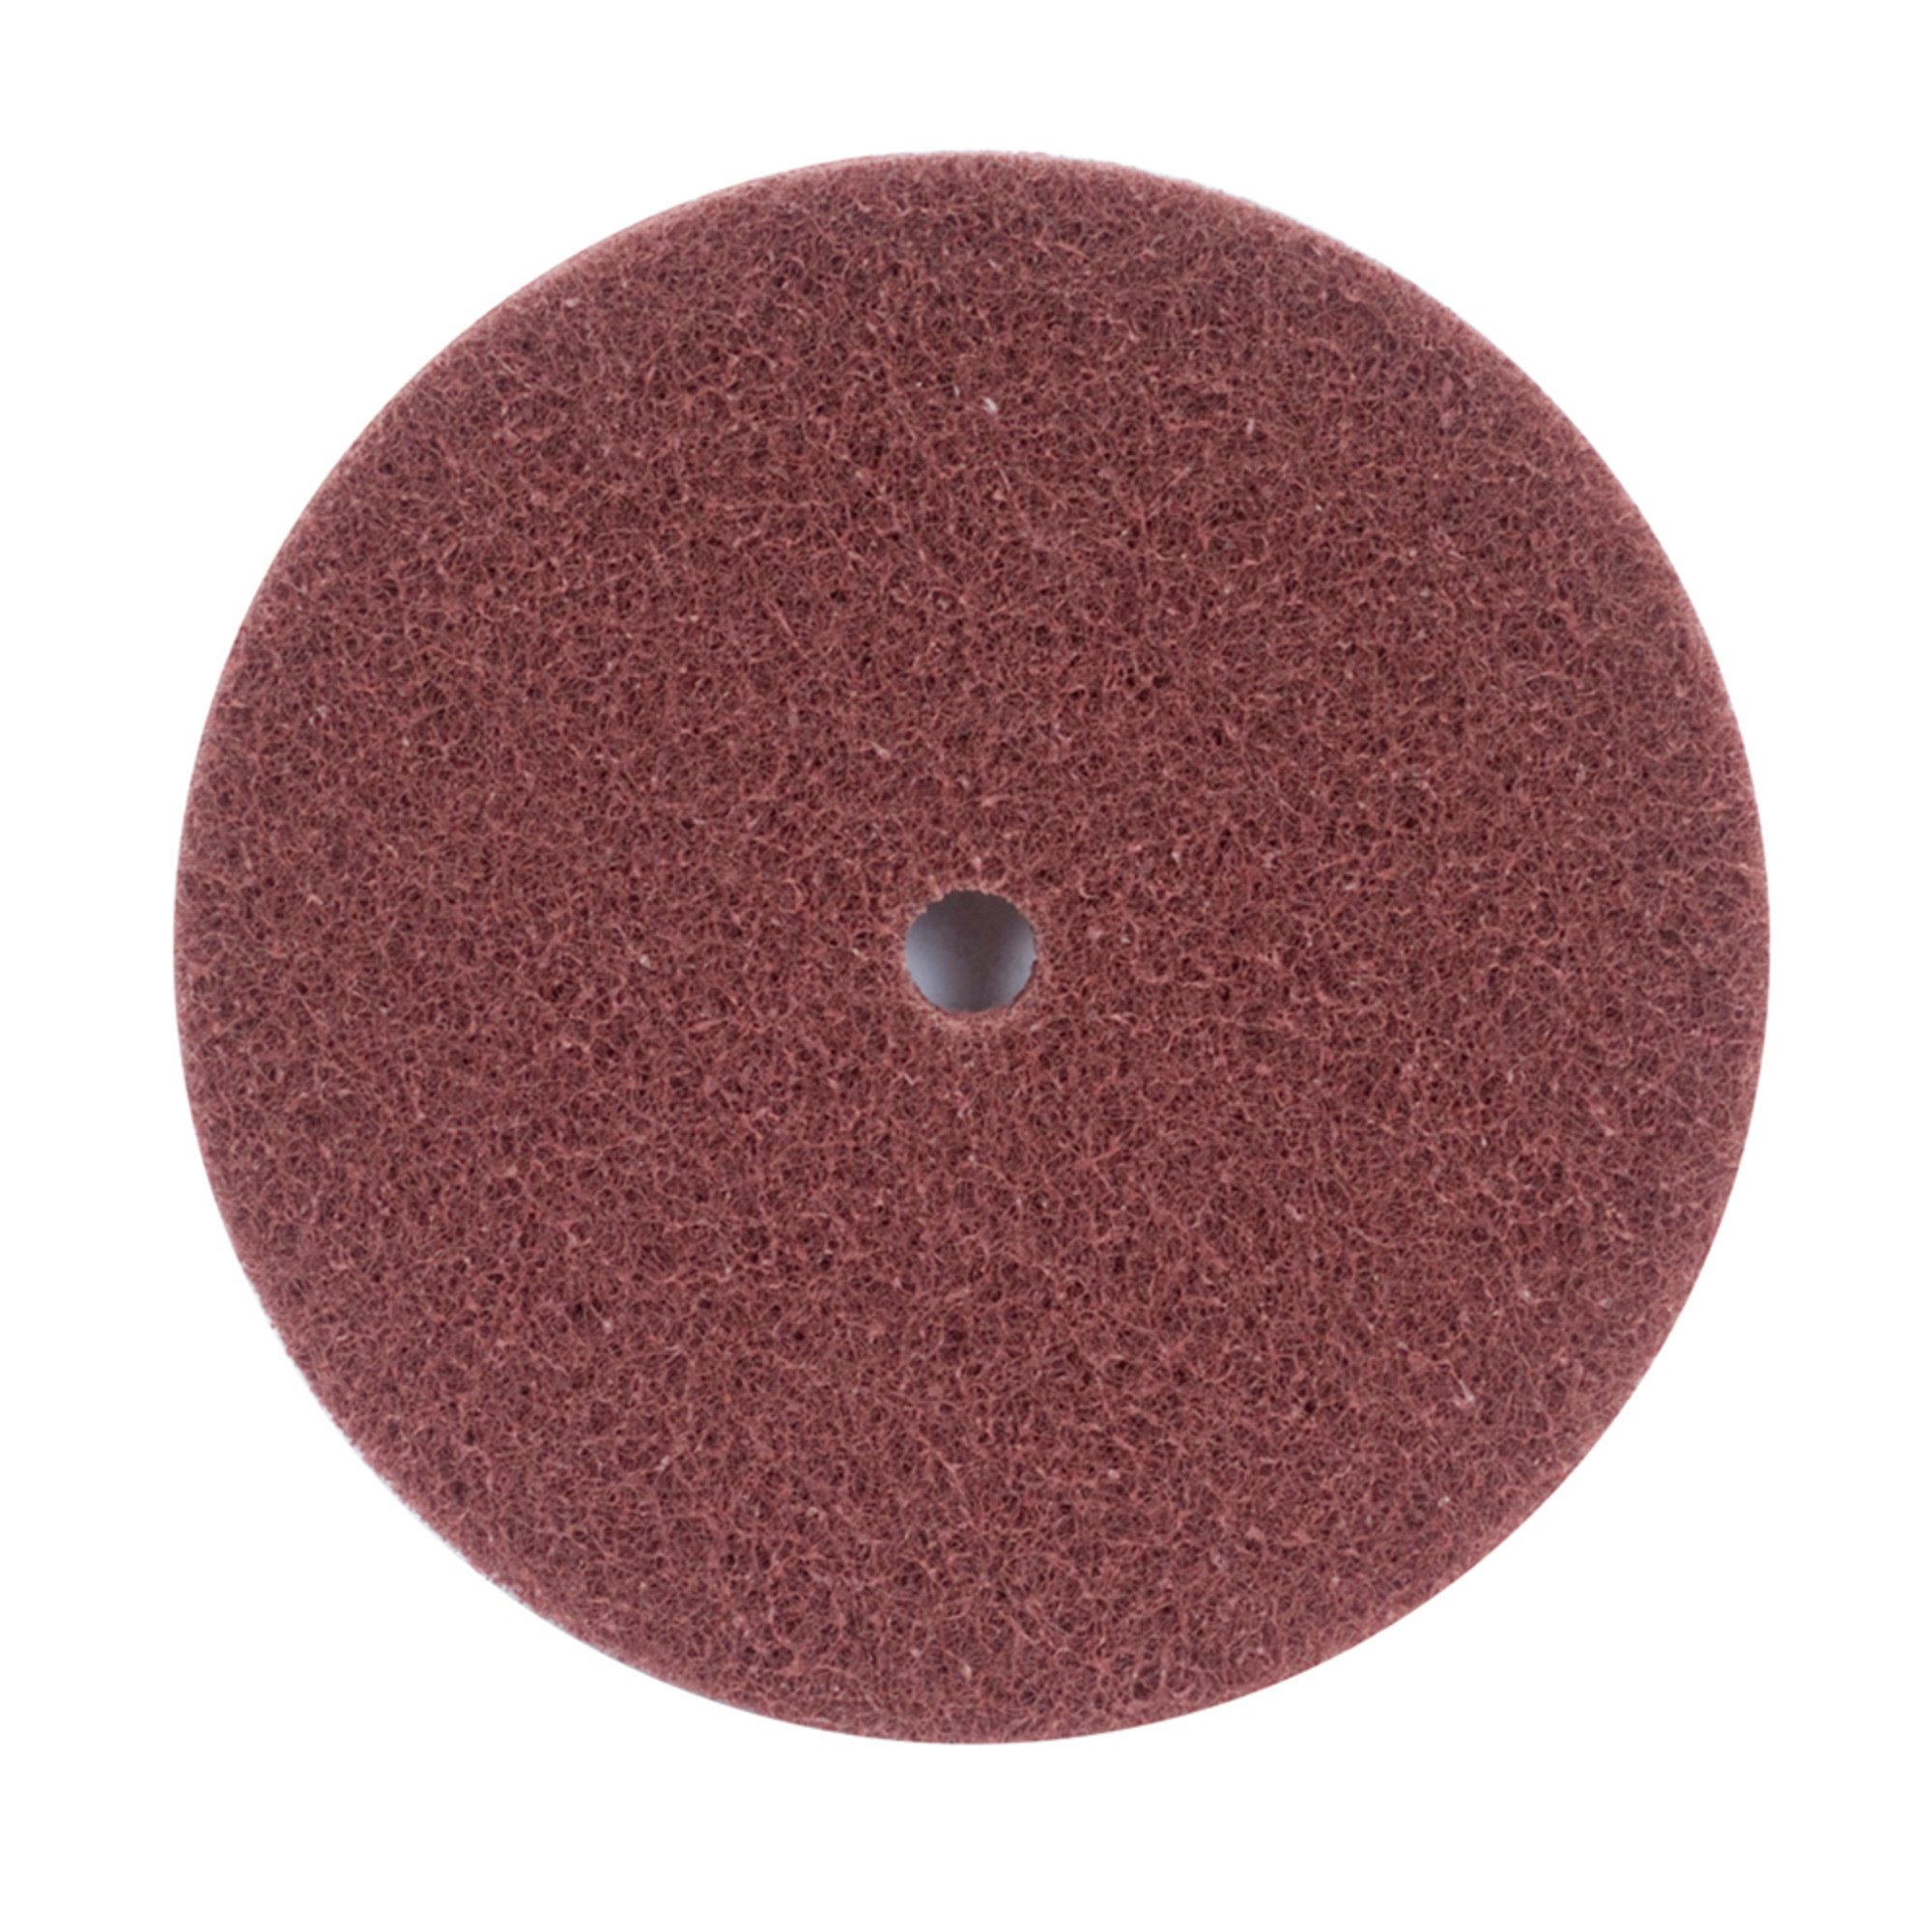 A/O High Strength Buffing Discs 8, Sold As 1 Each